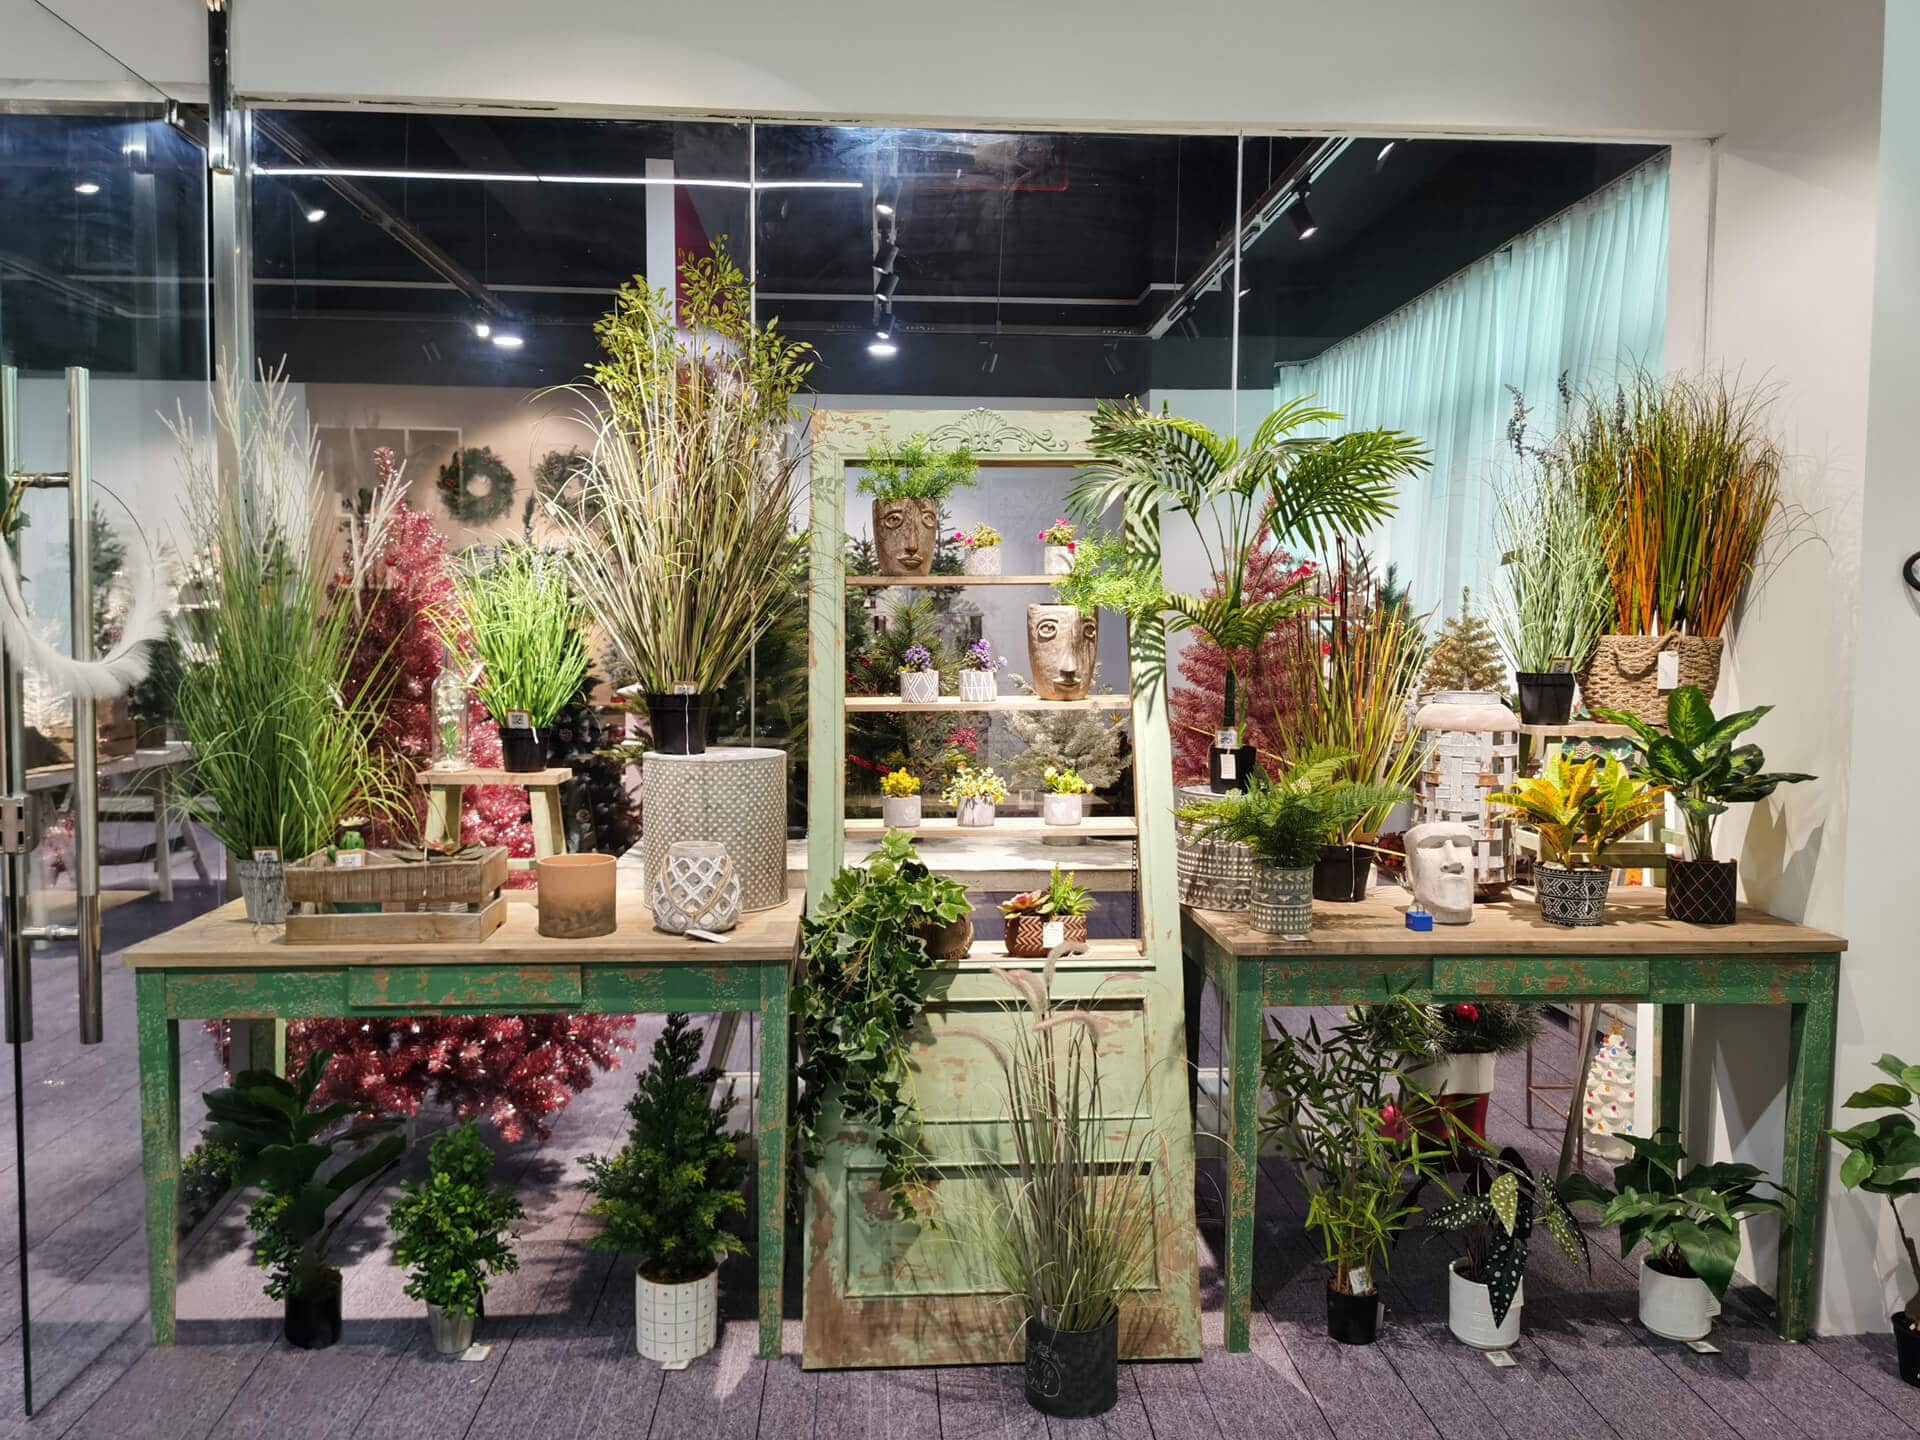 Co-Arts Innovation Artificial Plant Manufacturer in China